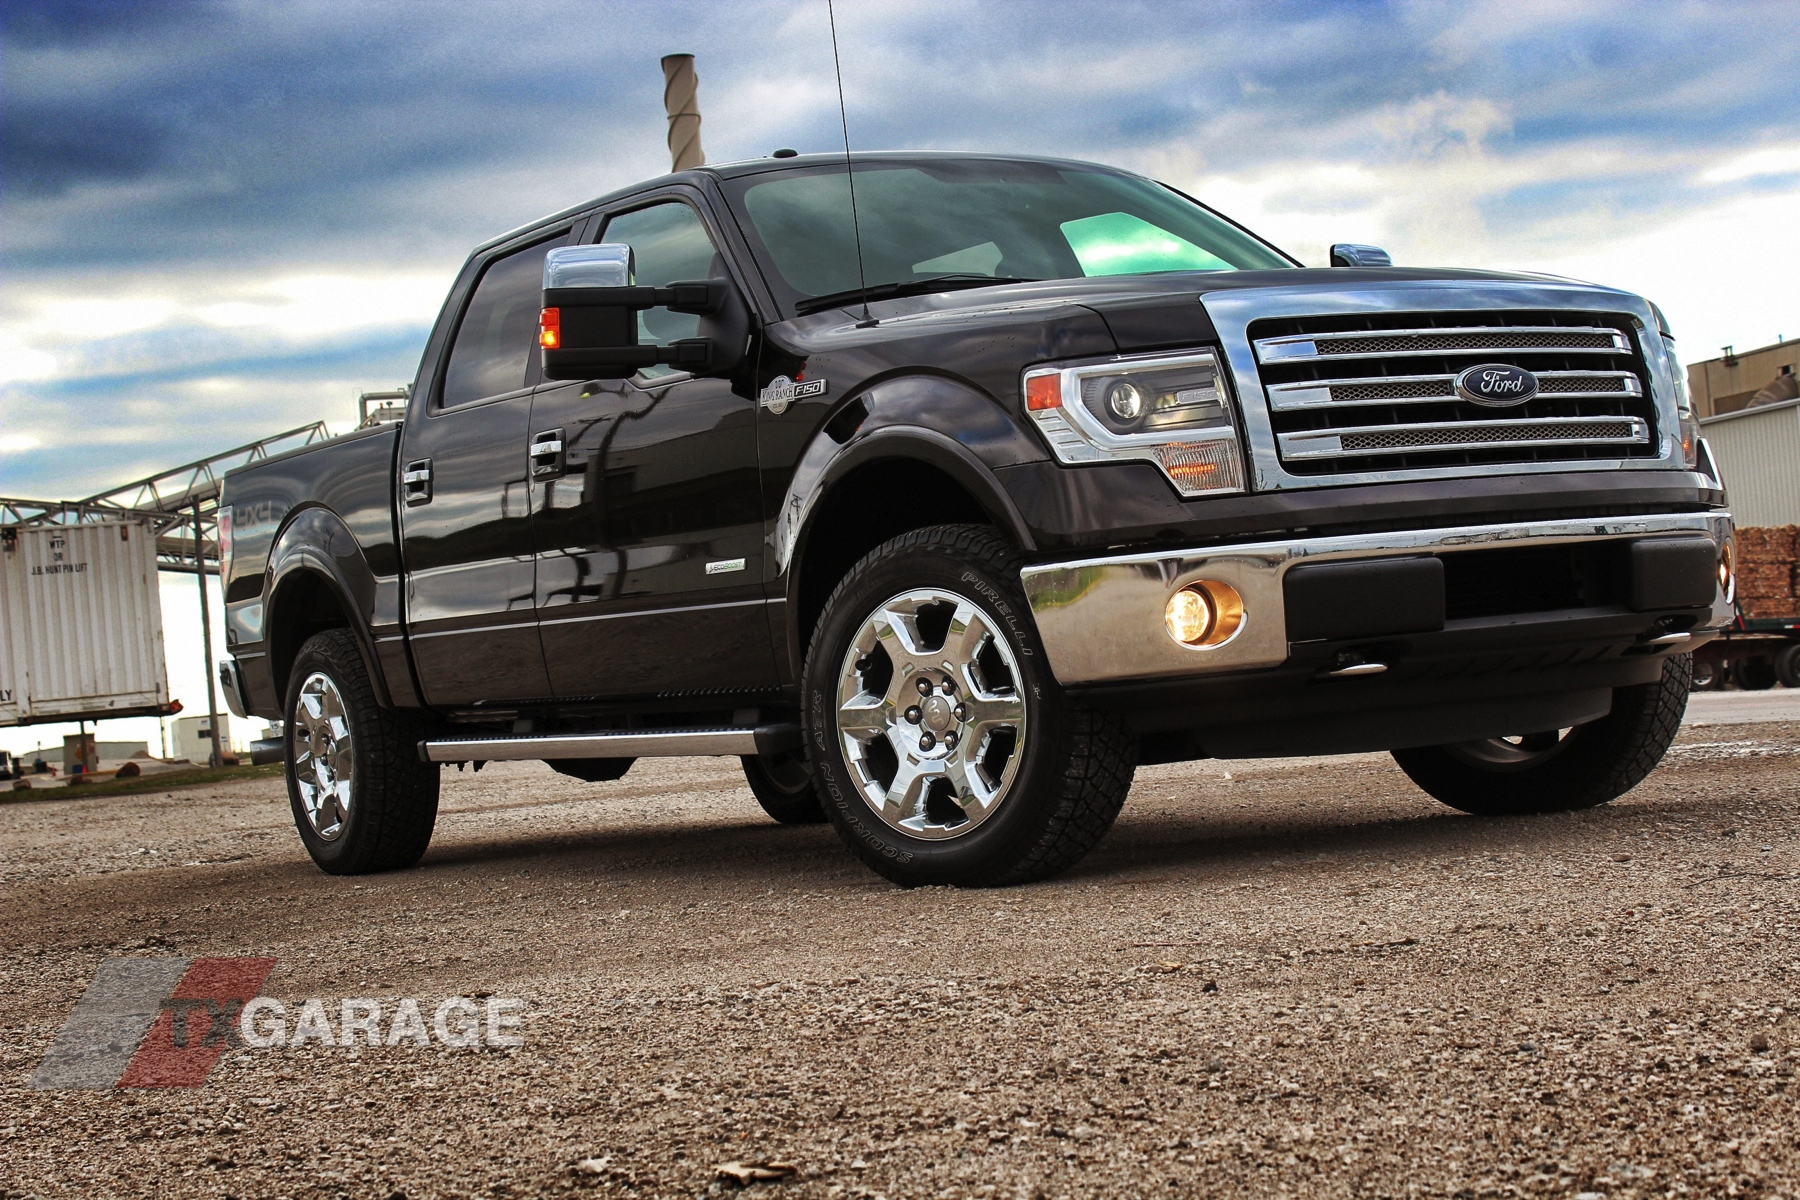 full review of the 2013 ford f 150 king ranch ecoboost 4x4 txgarage. Black Bedroom Furniture Sets. Home Design Ideas